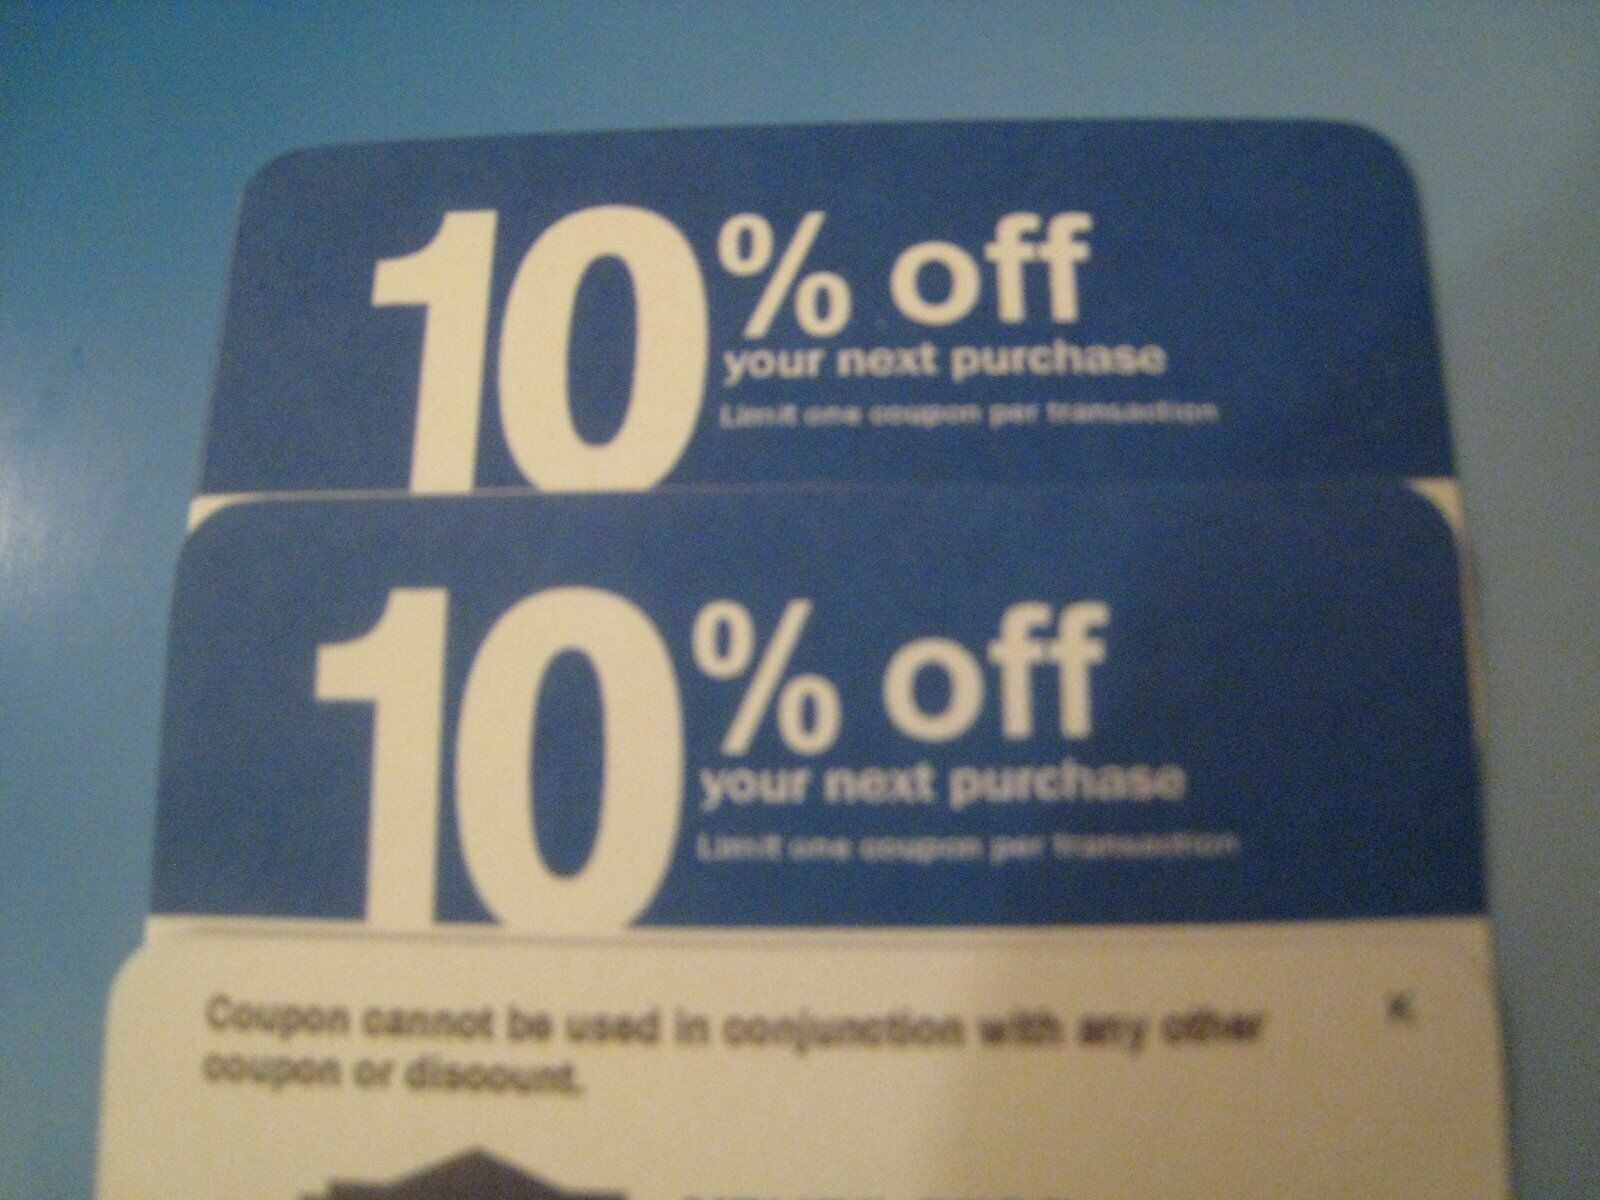 (4X) home depot 10 OFF! exp 10/2020 Lowes coupon ONLY